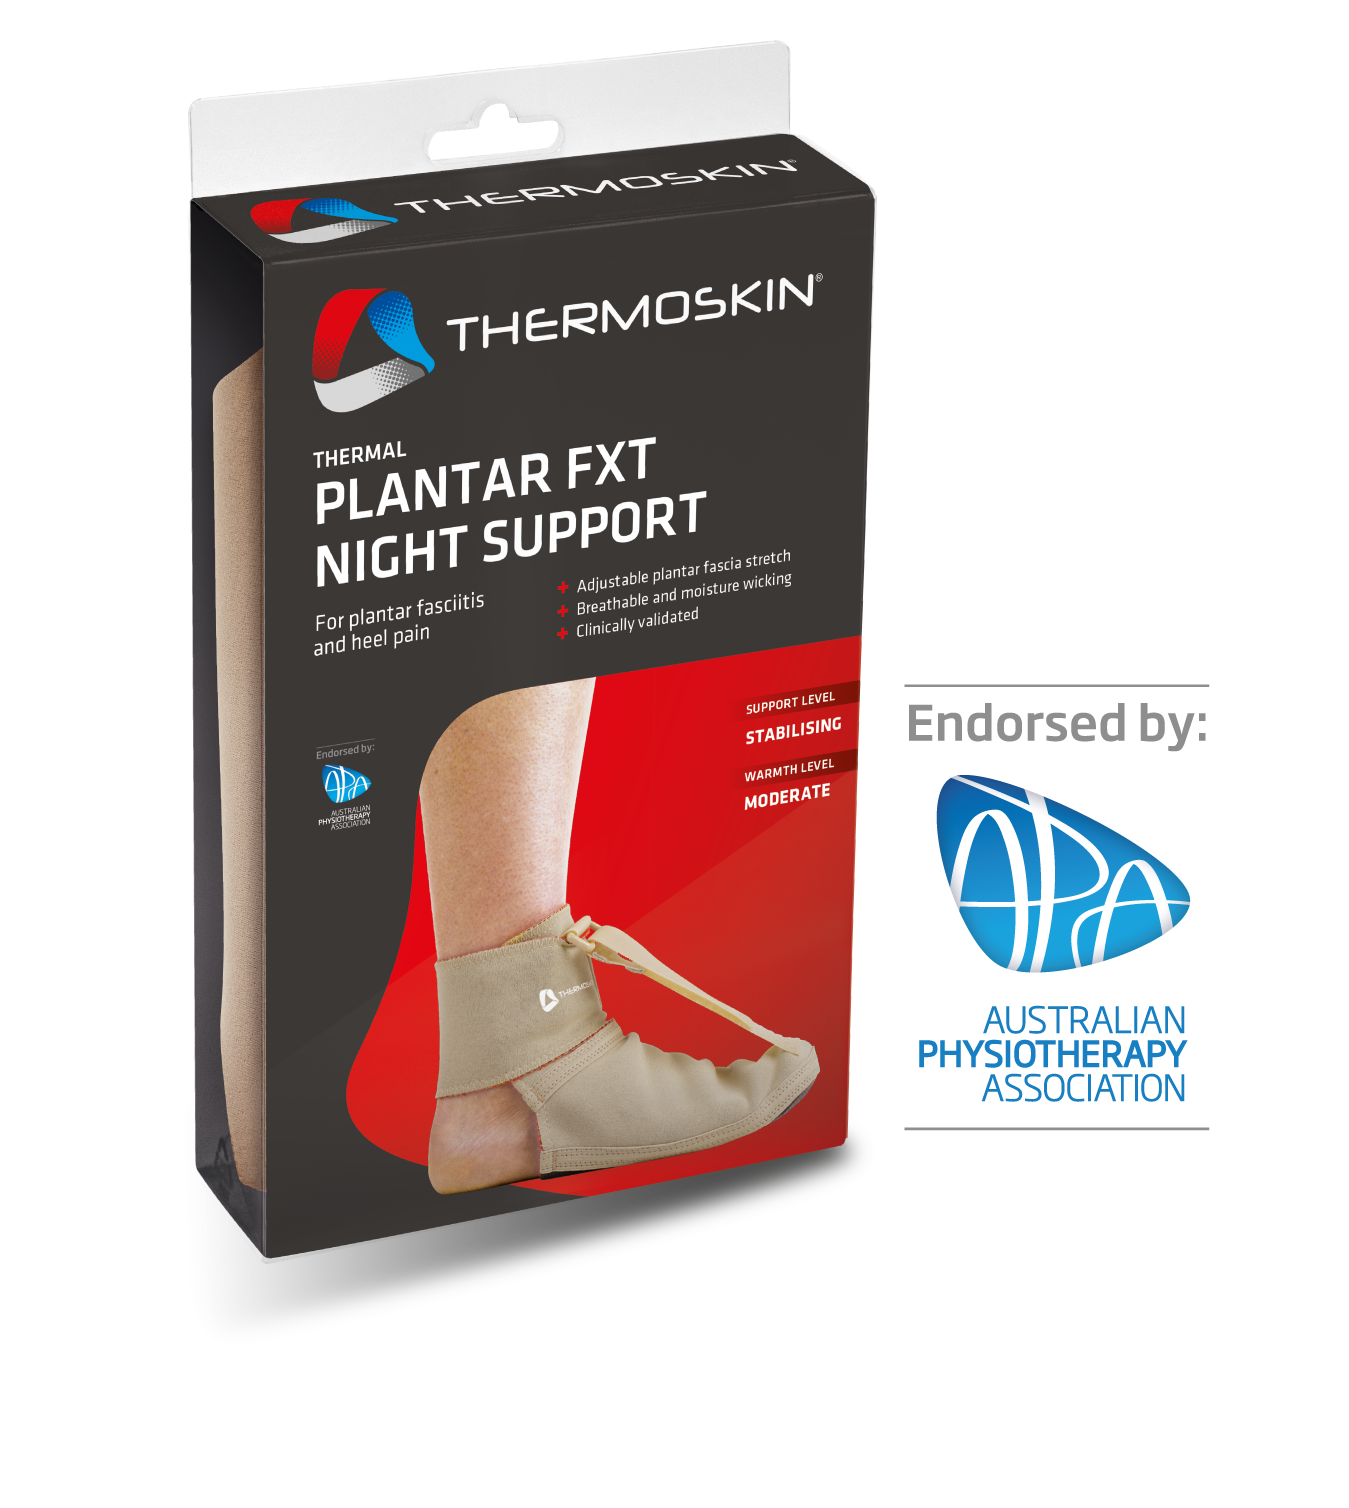 Thermoskin Thermal Plantar FXT Night Support - 8*234